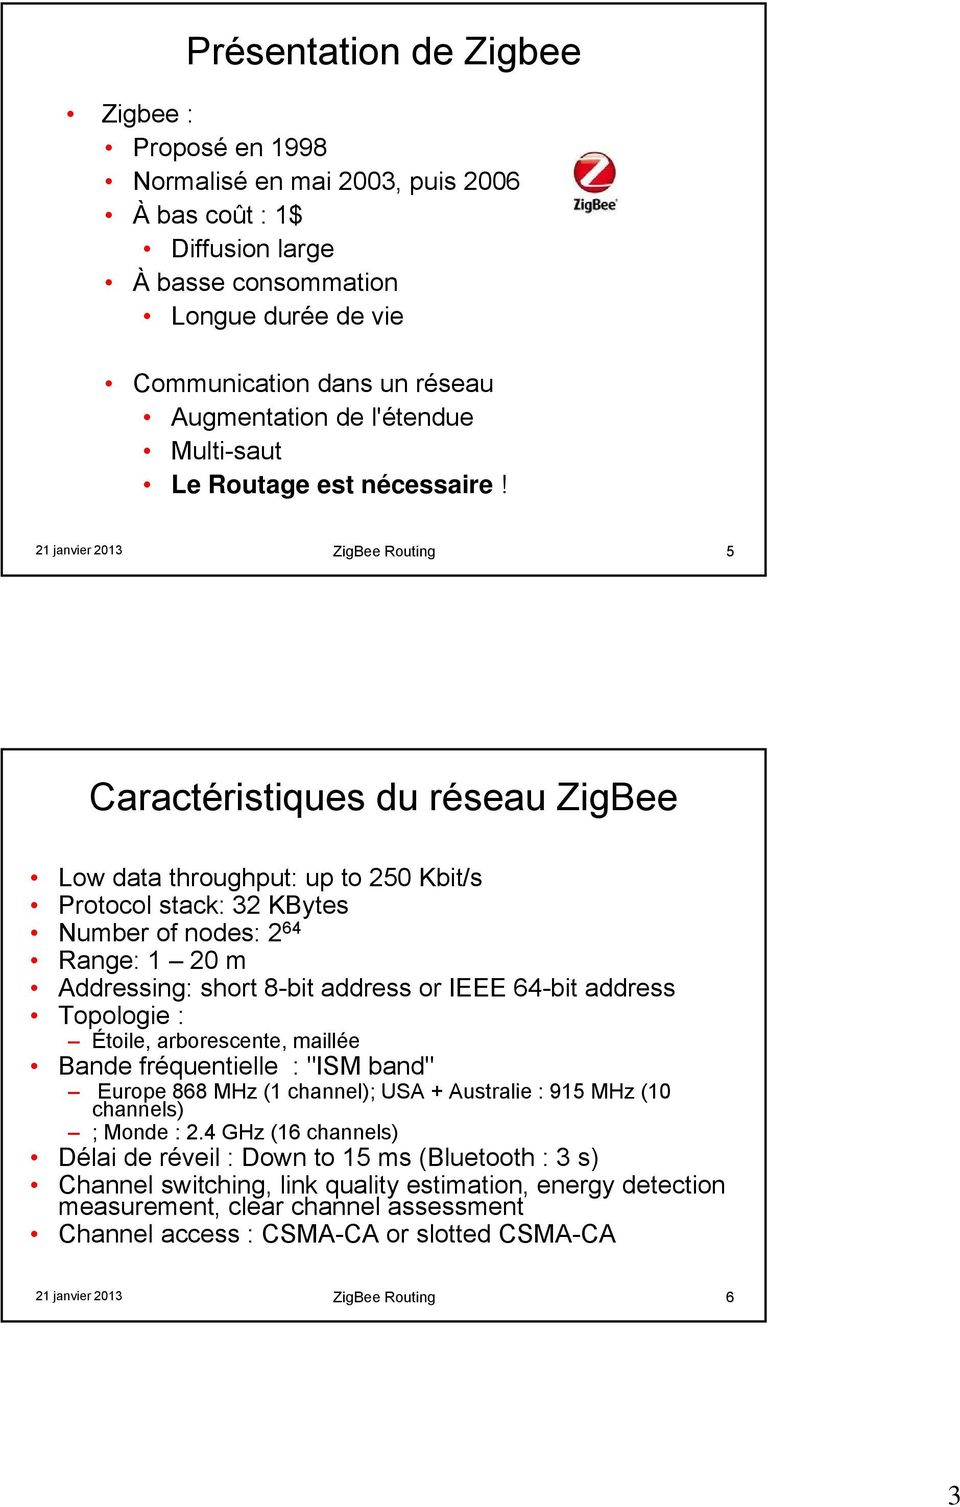 21 janvier 2013 ZigBee Routing 5 Caractéristiques du réseau ZigBee Low data throughput: up to 250 Kbit/s Protocol stack: 32 KBytes Number of nodes: 2 64 Range: 1 20 m Addressing: short 8-bit address